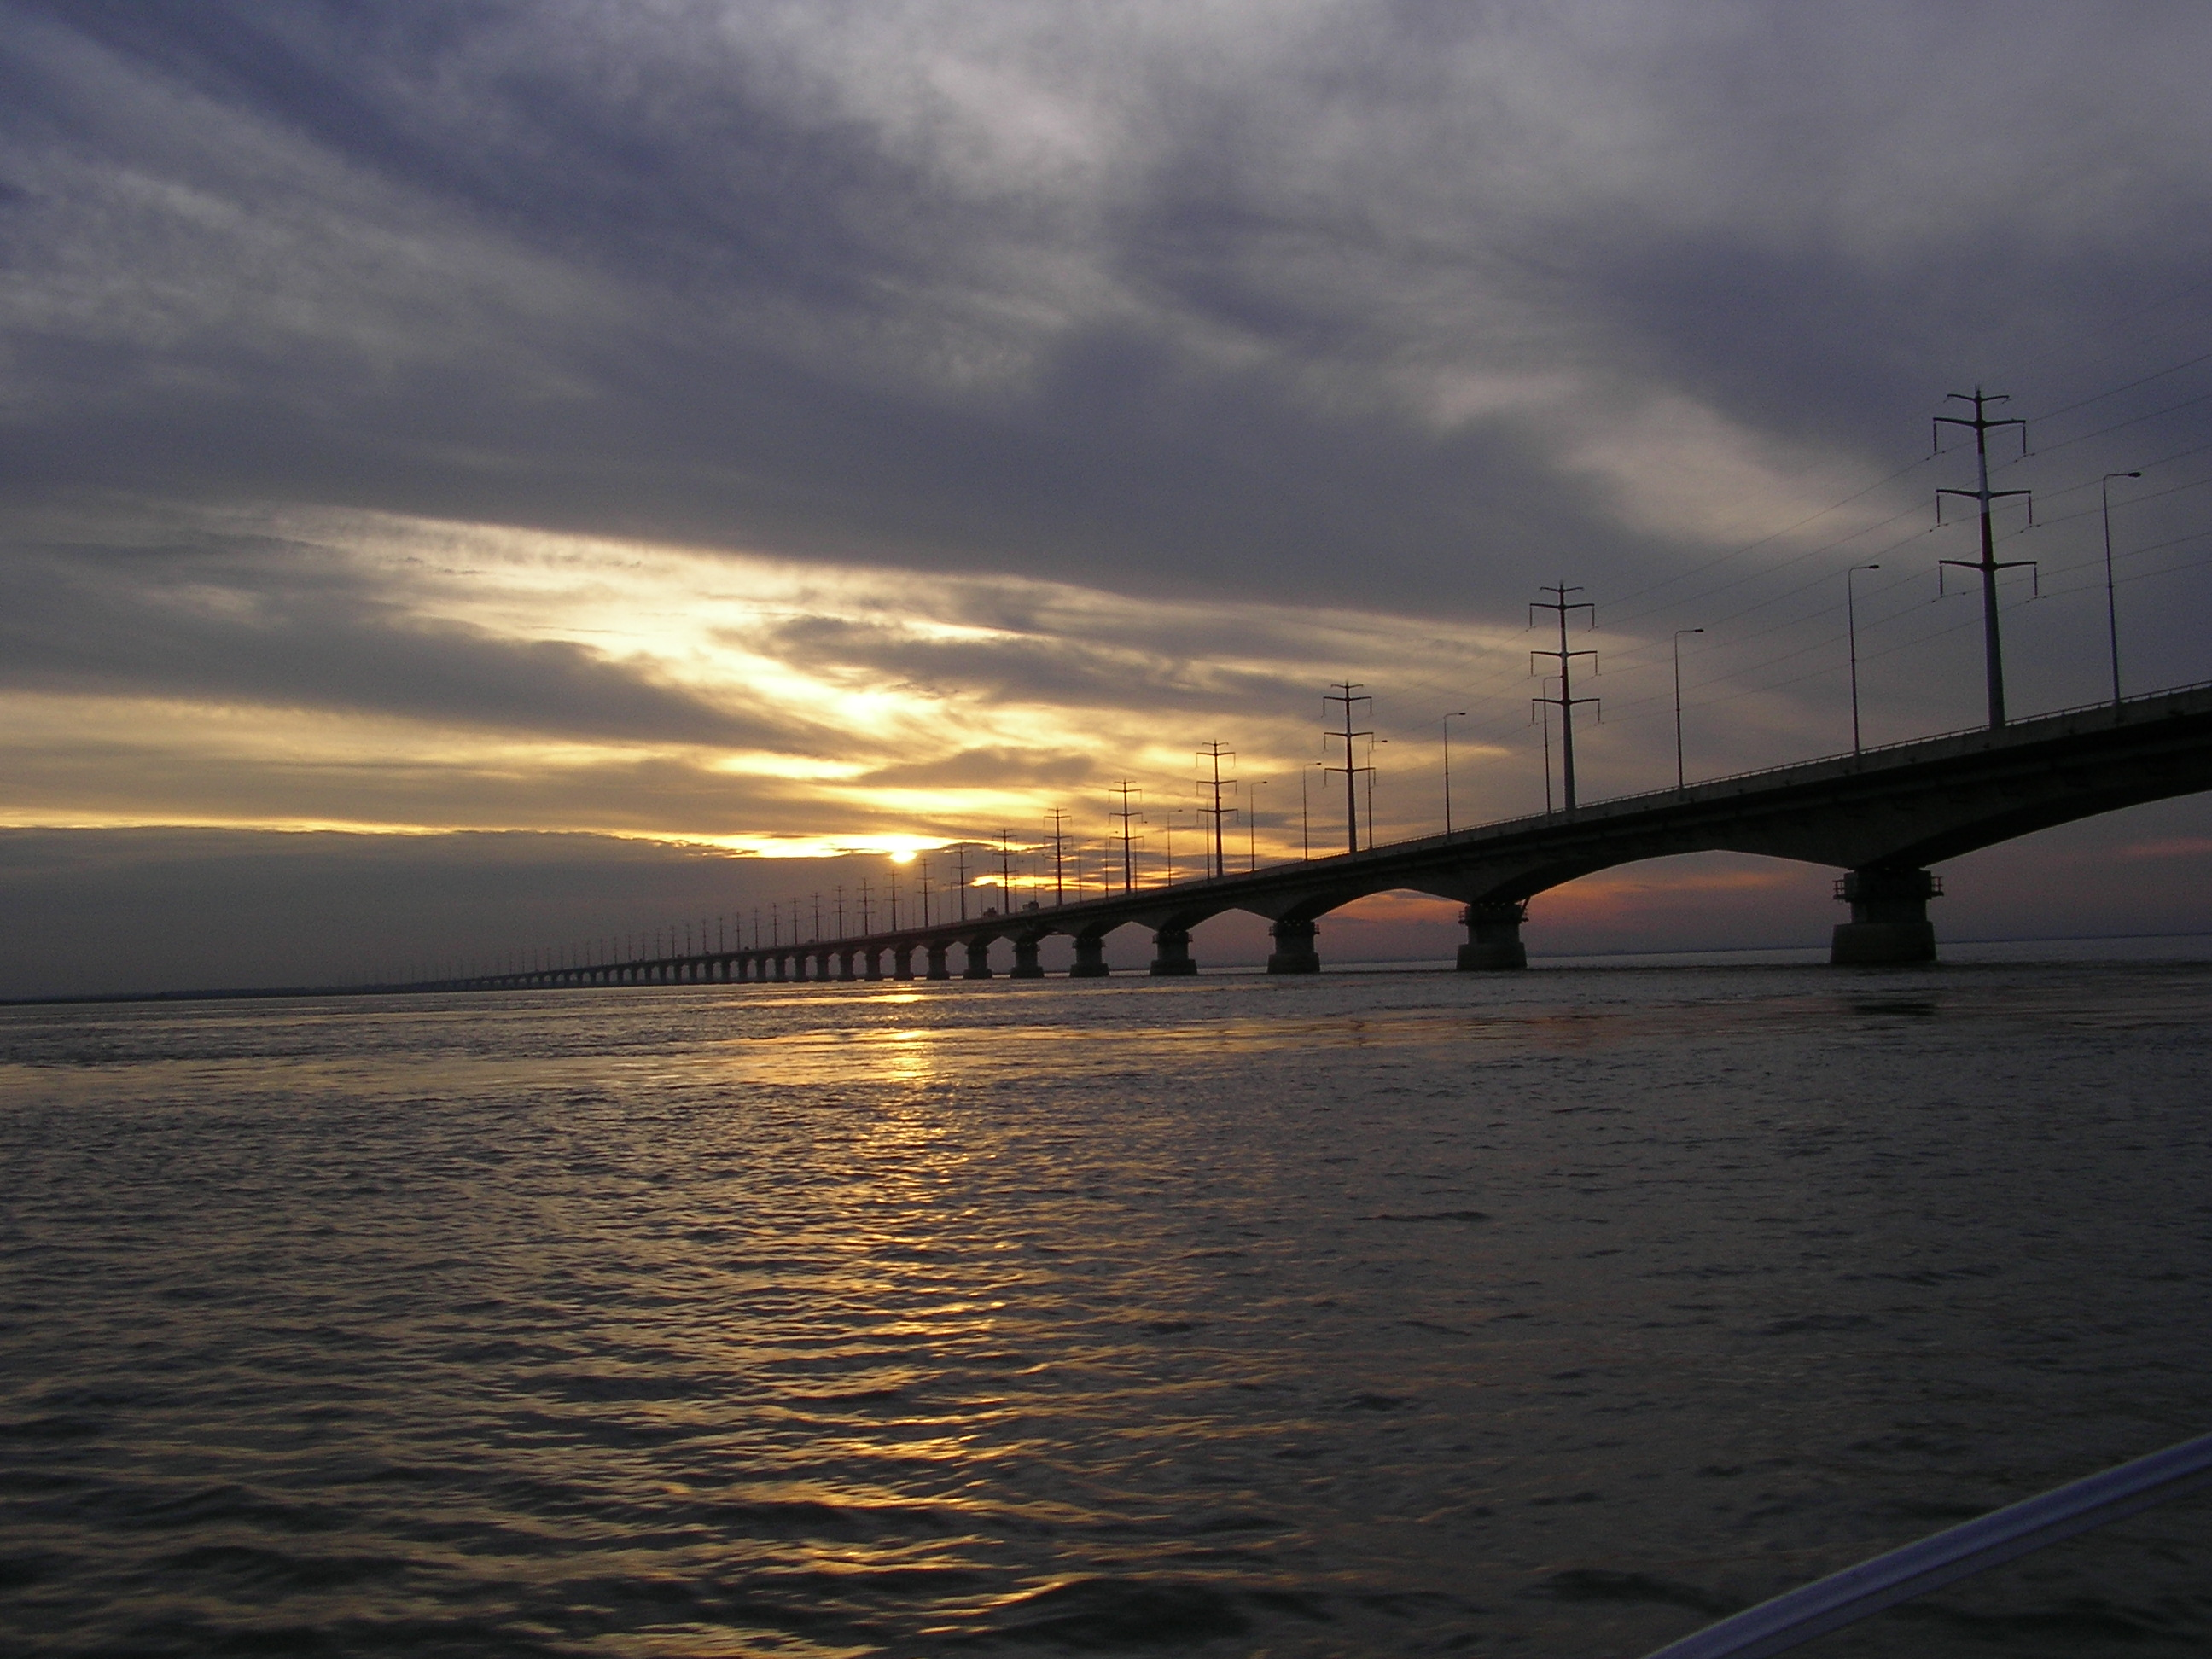 the rivers of bangladesh Definitions of list of rivers of bangladesh, synonyms, antonyms, derivatives of list of rivers of bangladesh, analogical dictionary of list of rivers of bangladesh.